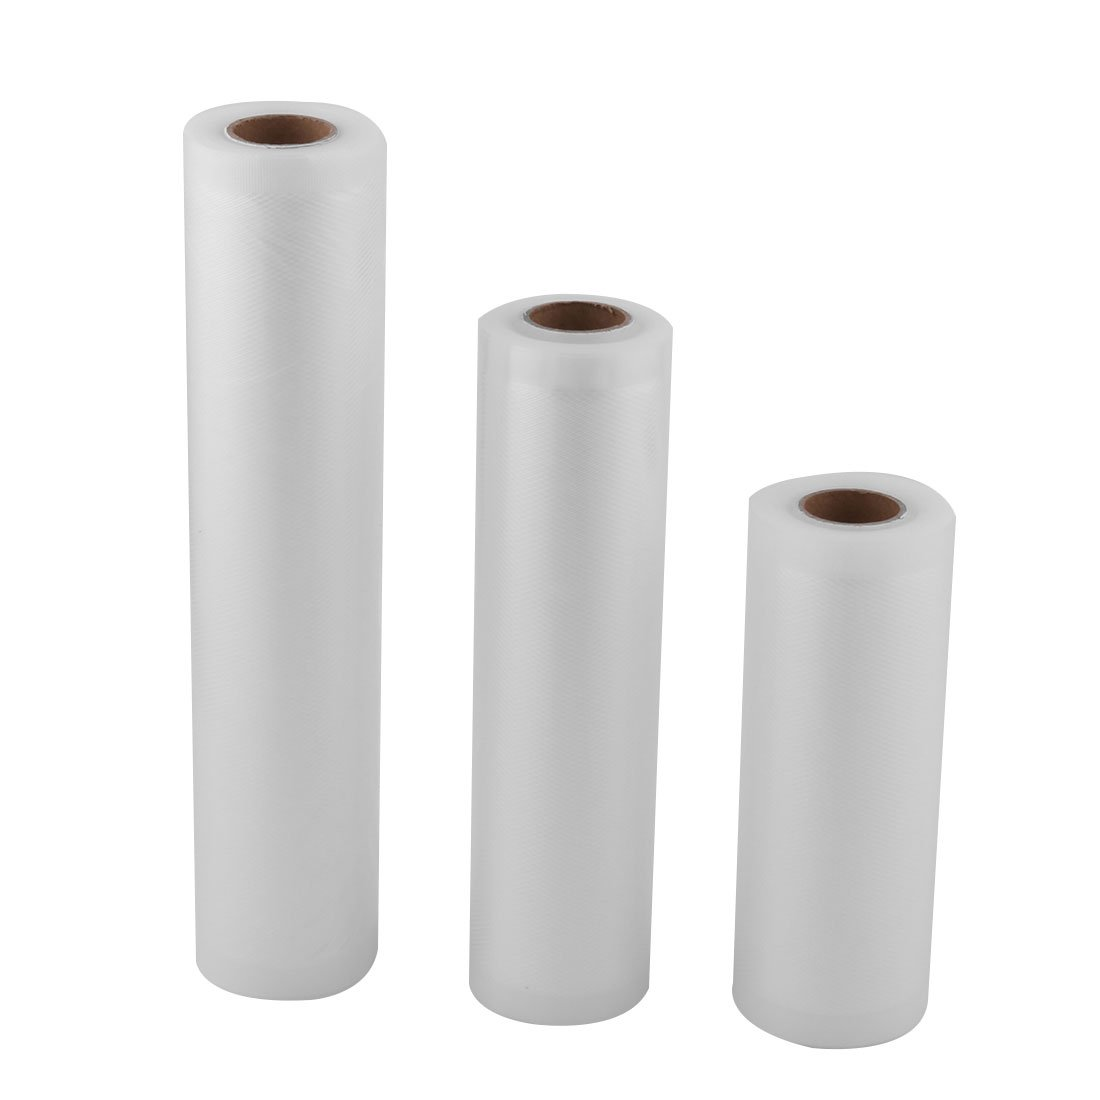 uxcell PVC Kitchen Food Saver Fruit Vegetable Storage Bag Vacuum Roll 3 in 1 White